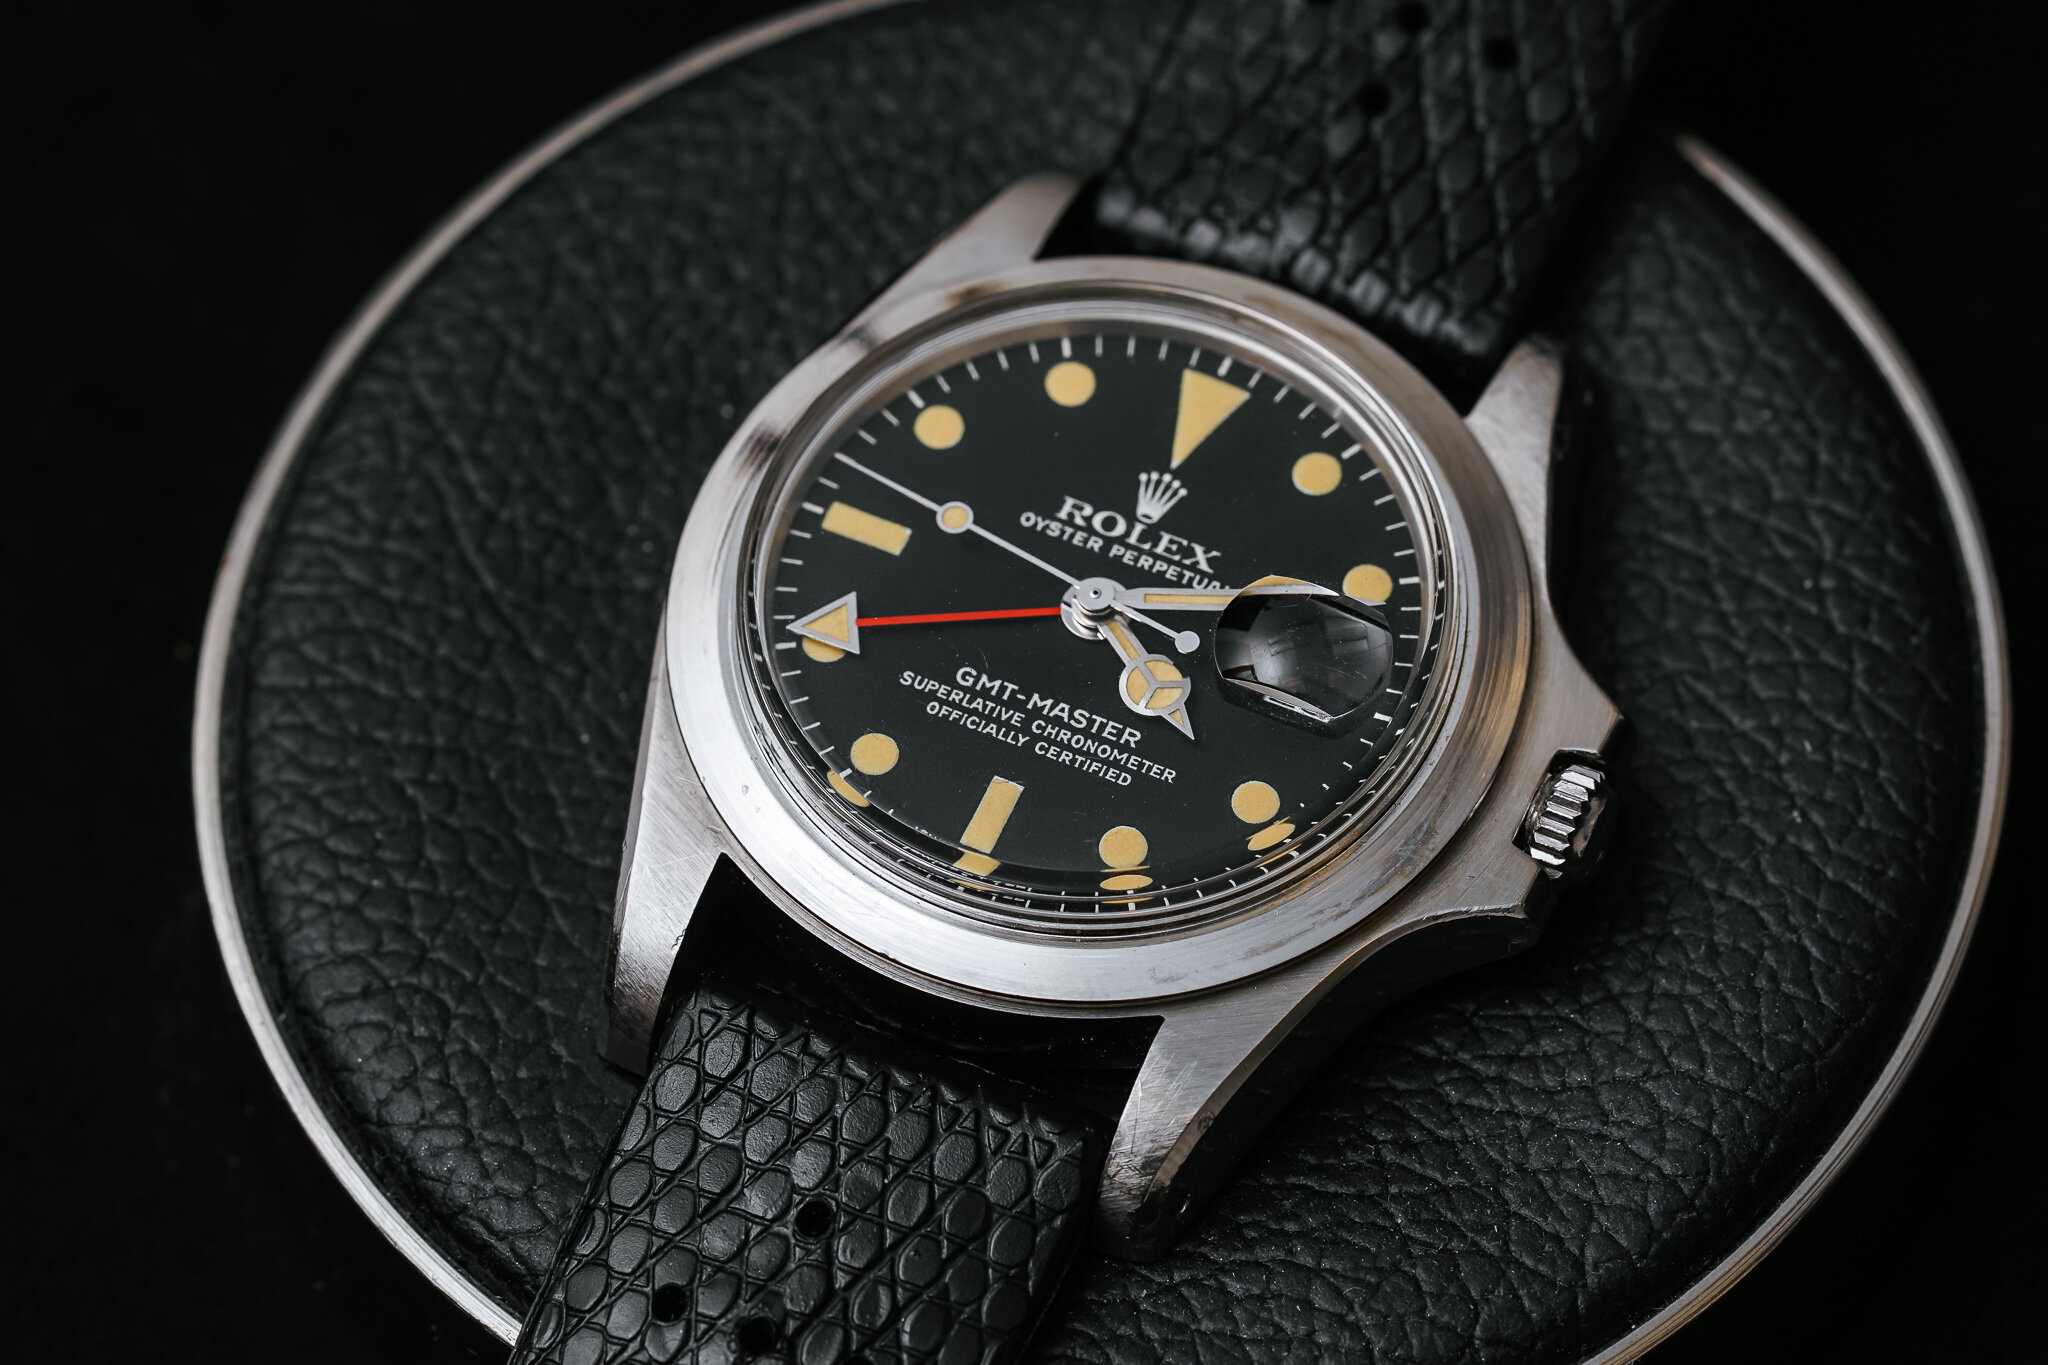 Marlon Brando's Rolex GMT Master ref. 1675 is in shockingly good condition. Outside of wearing it for the filming of  Apocalypse Now  in 1978, Brando only wore it on special occasions before gifting it to his daughter in 1995.